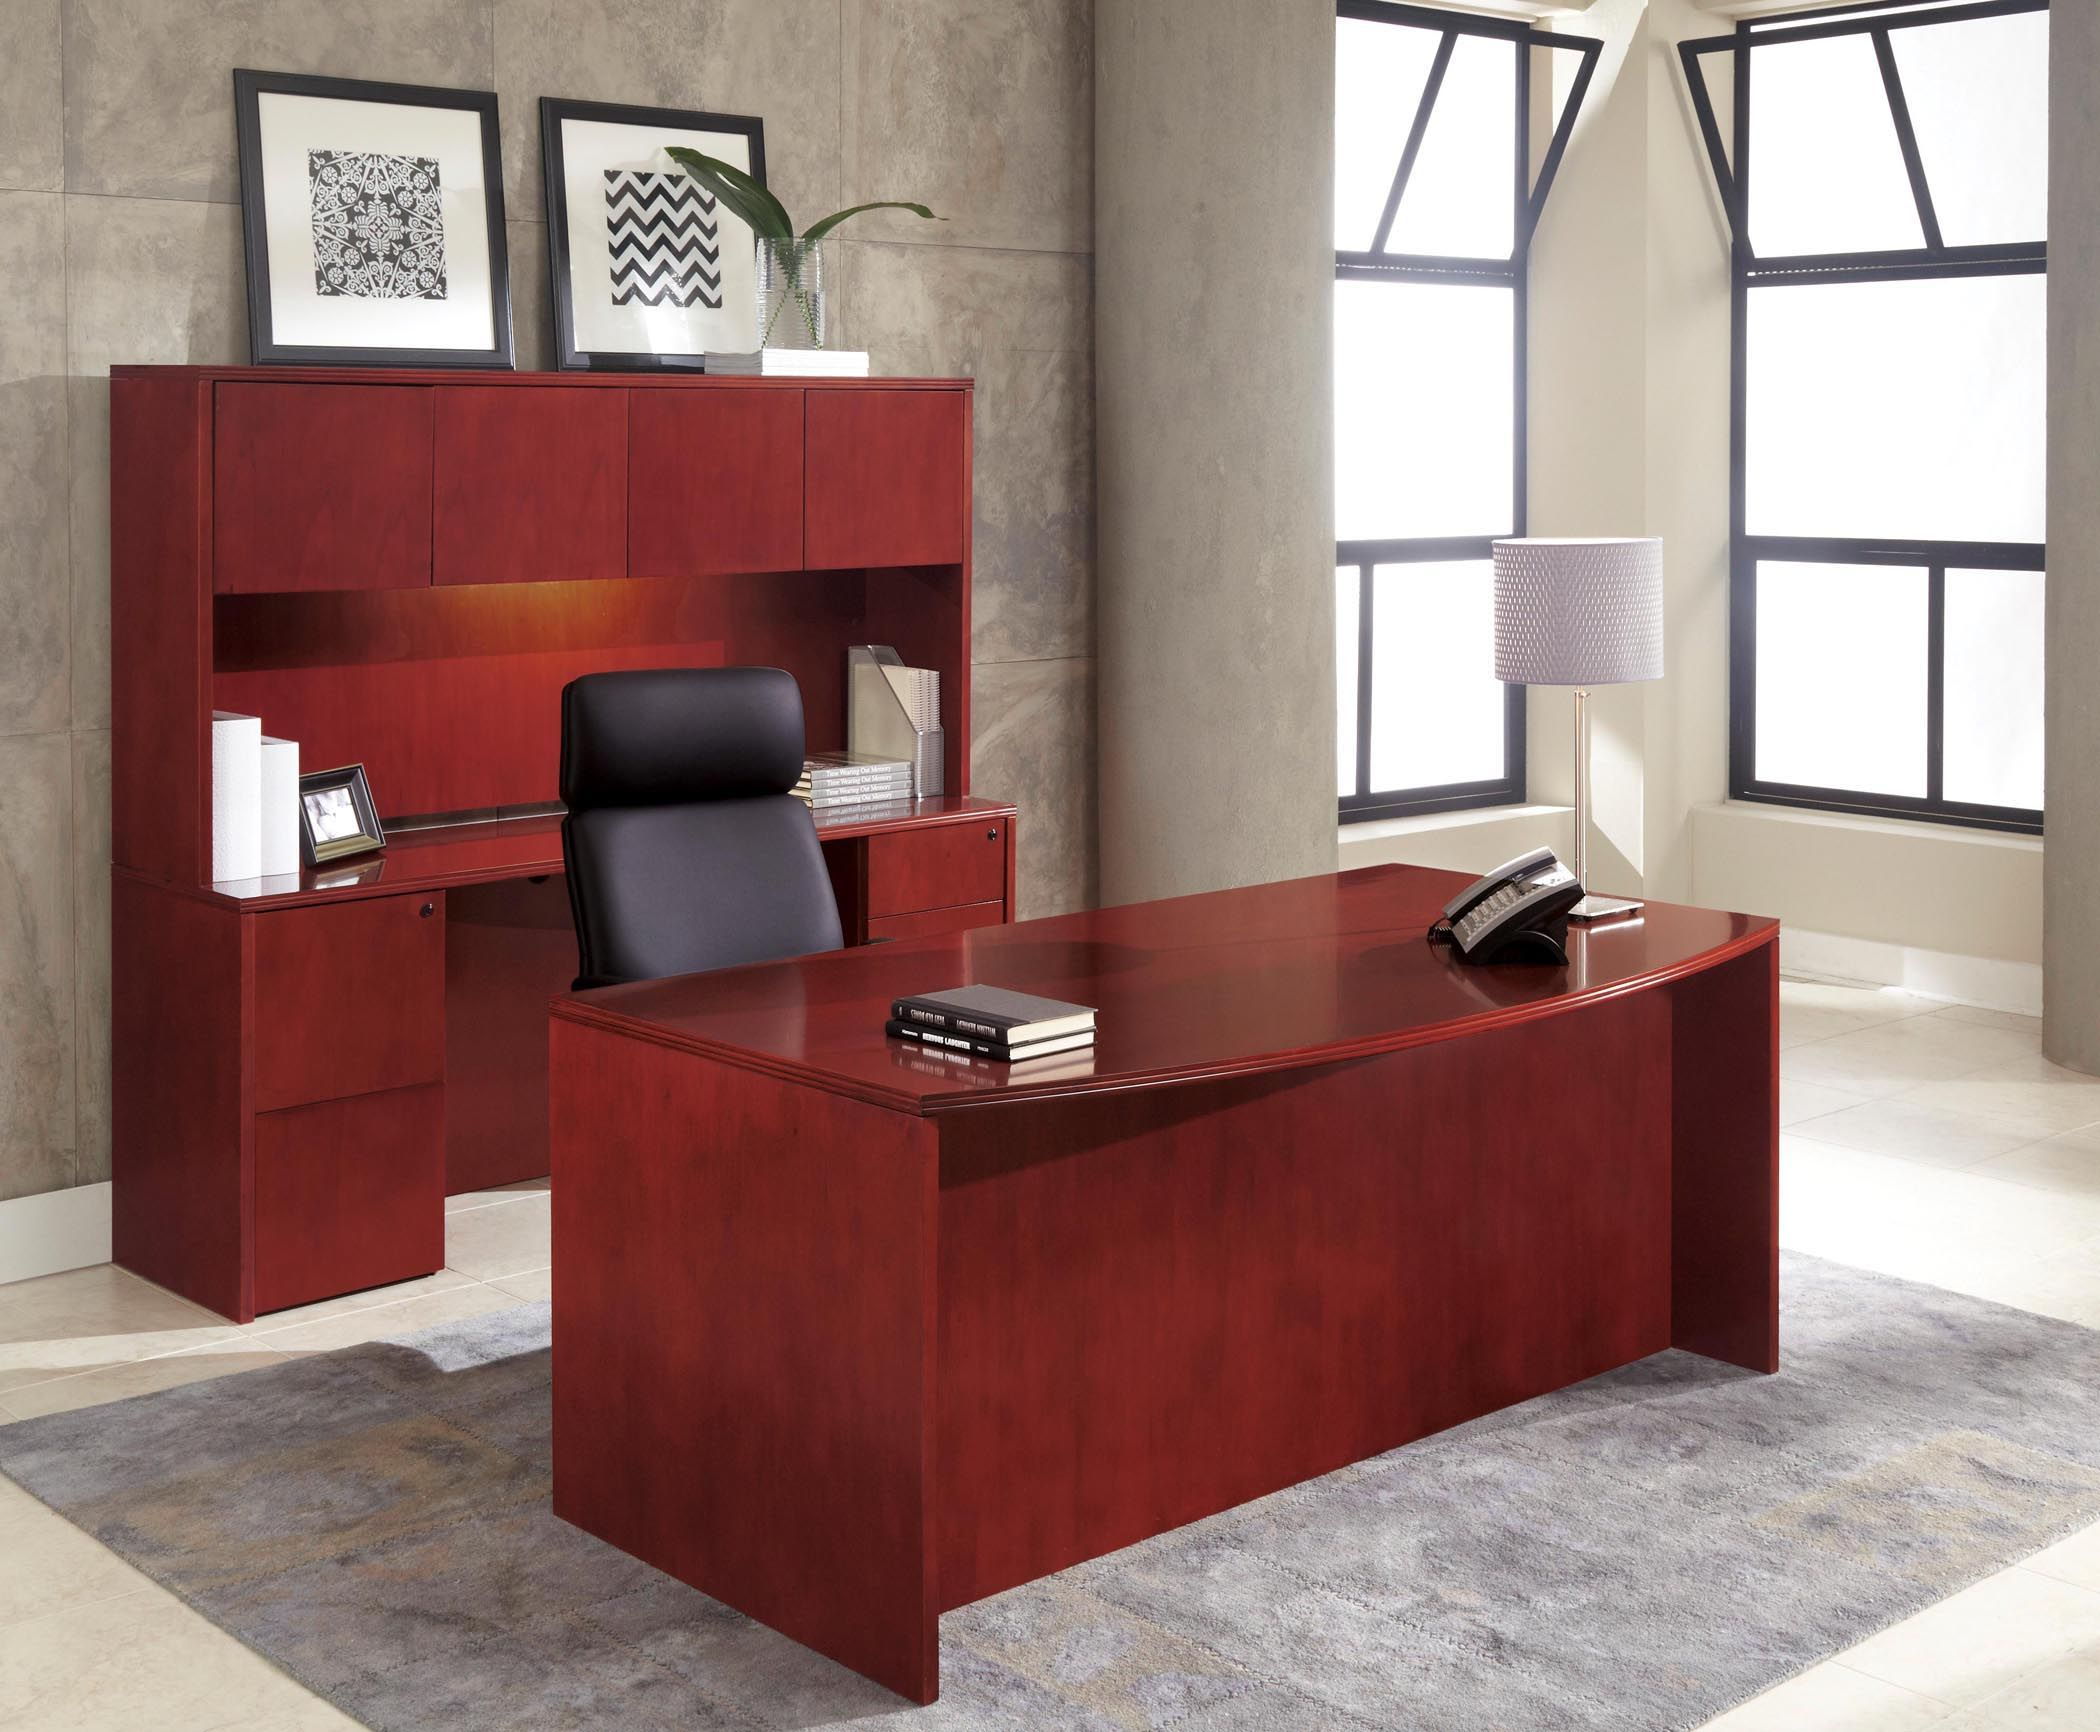 Red Cherry Wood Furniture Wood Office Furniture Cherry Wood